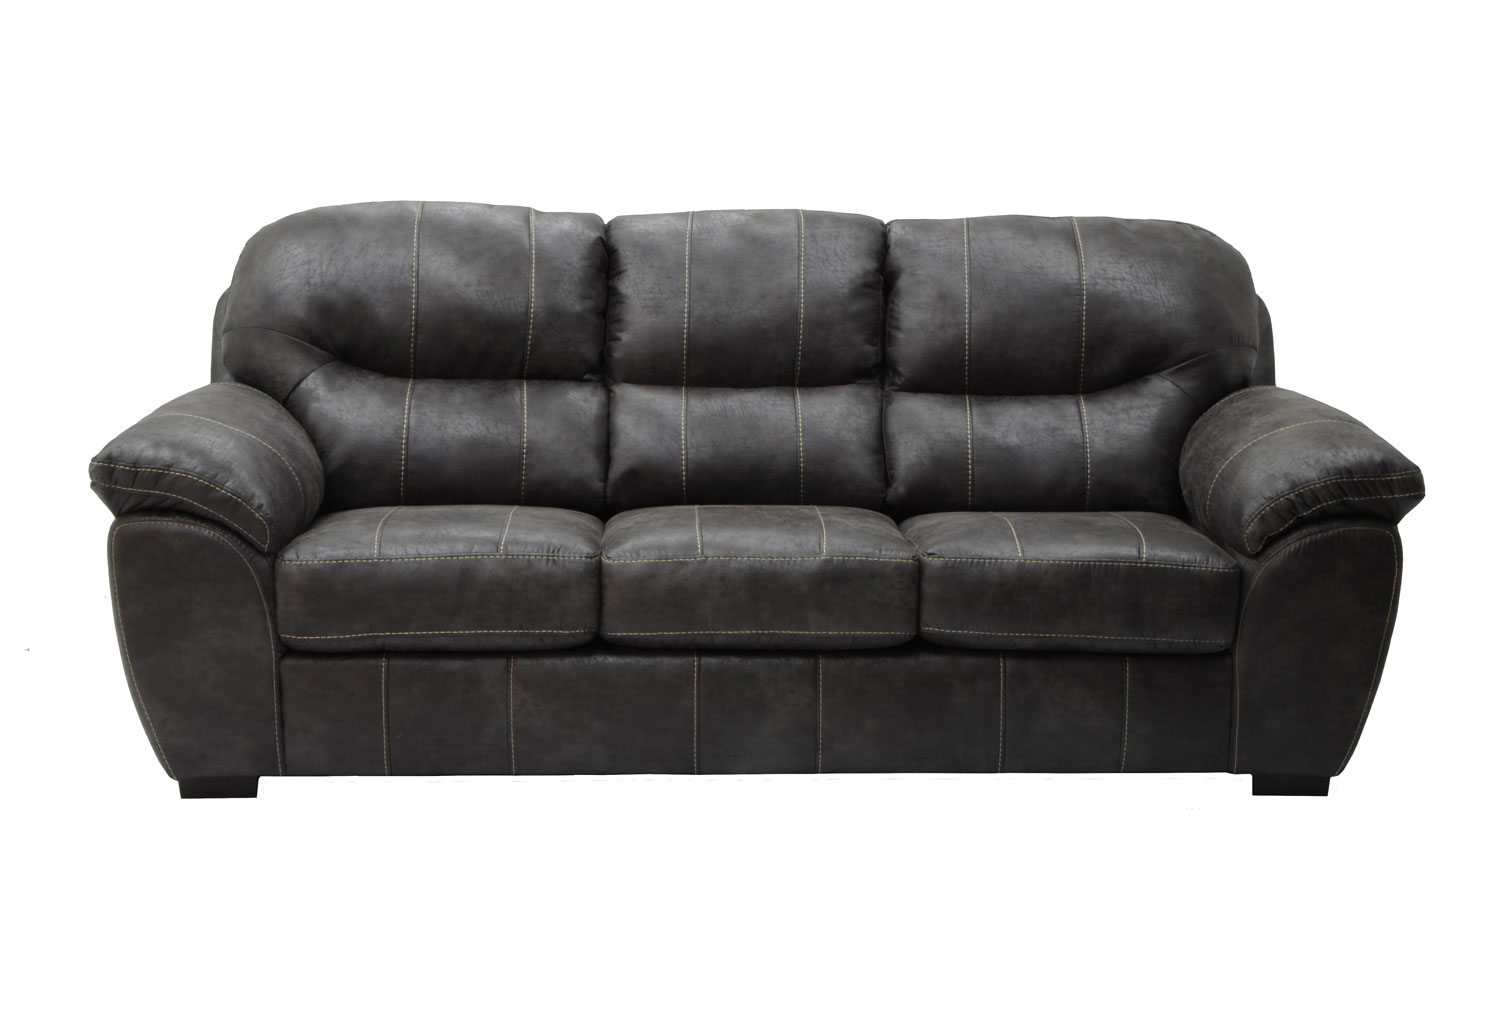 Jackson Grant Bonded Leather Queen Sleeper Sofa   Steel